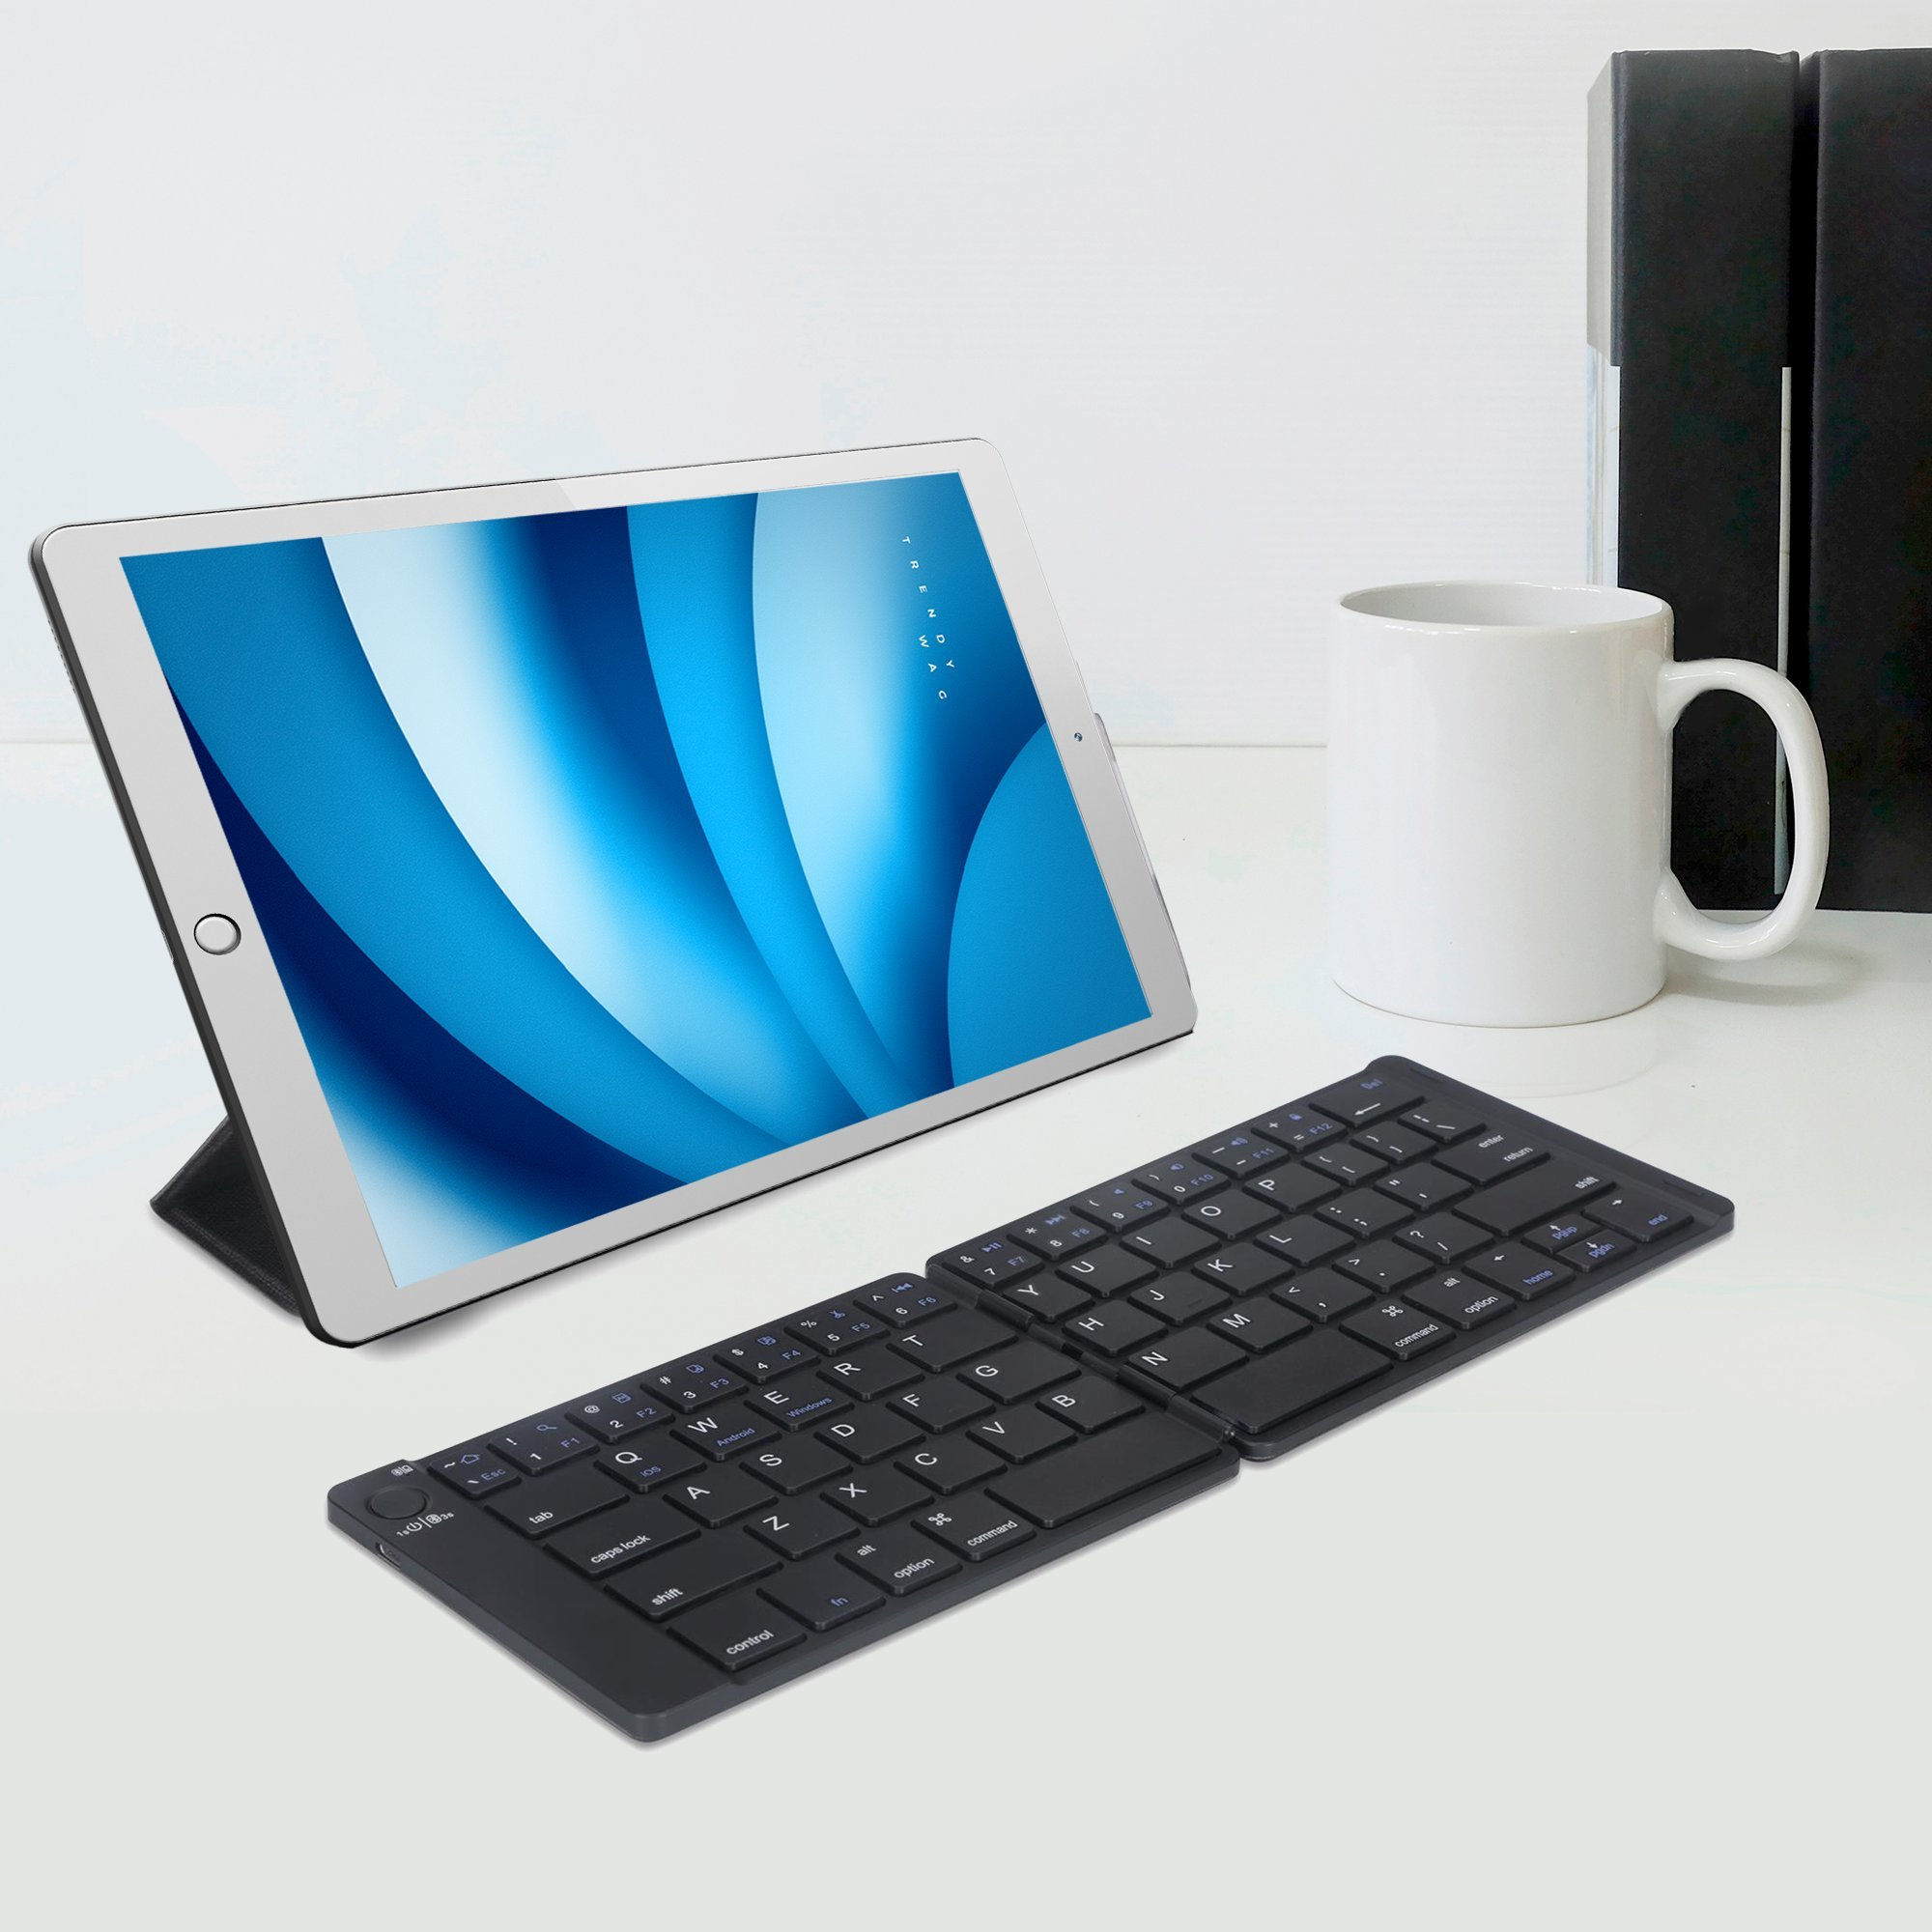 Foldable Bluetooth Keyboard Trendy Wag Portable Wireless Folding Rechargeable Pocket Size Full Size Ultra Slim for Windows Mac OS Android iOS PC iPad Samsung Tablet Smartphones by Trendy Wag (Image #6)